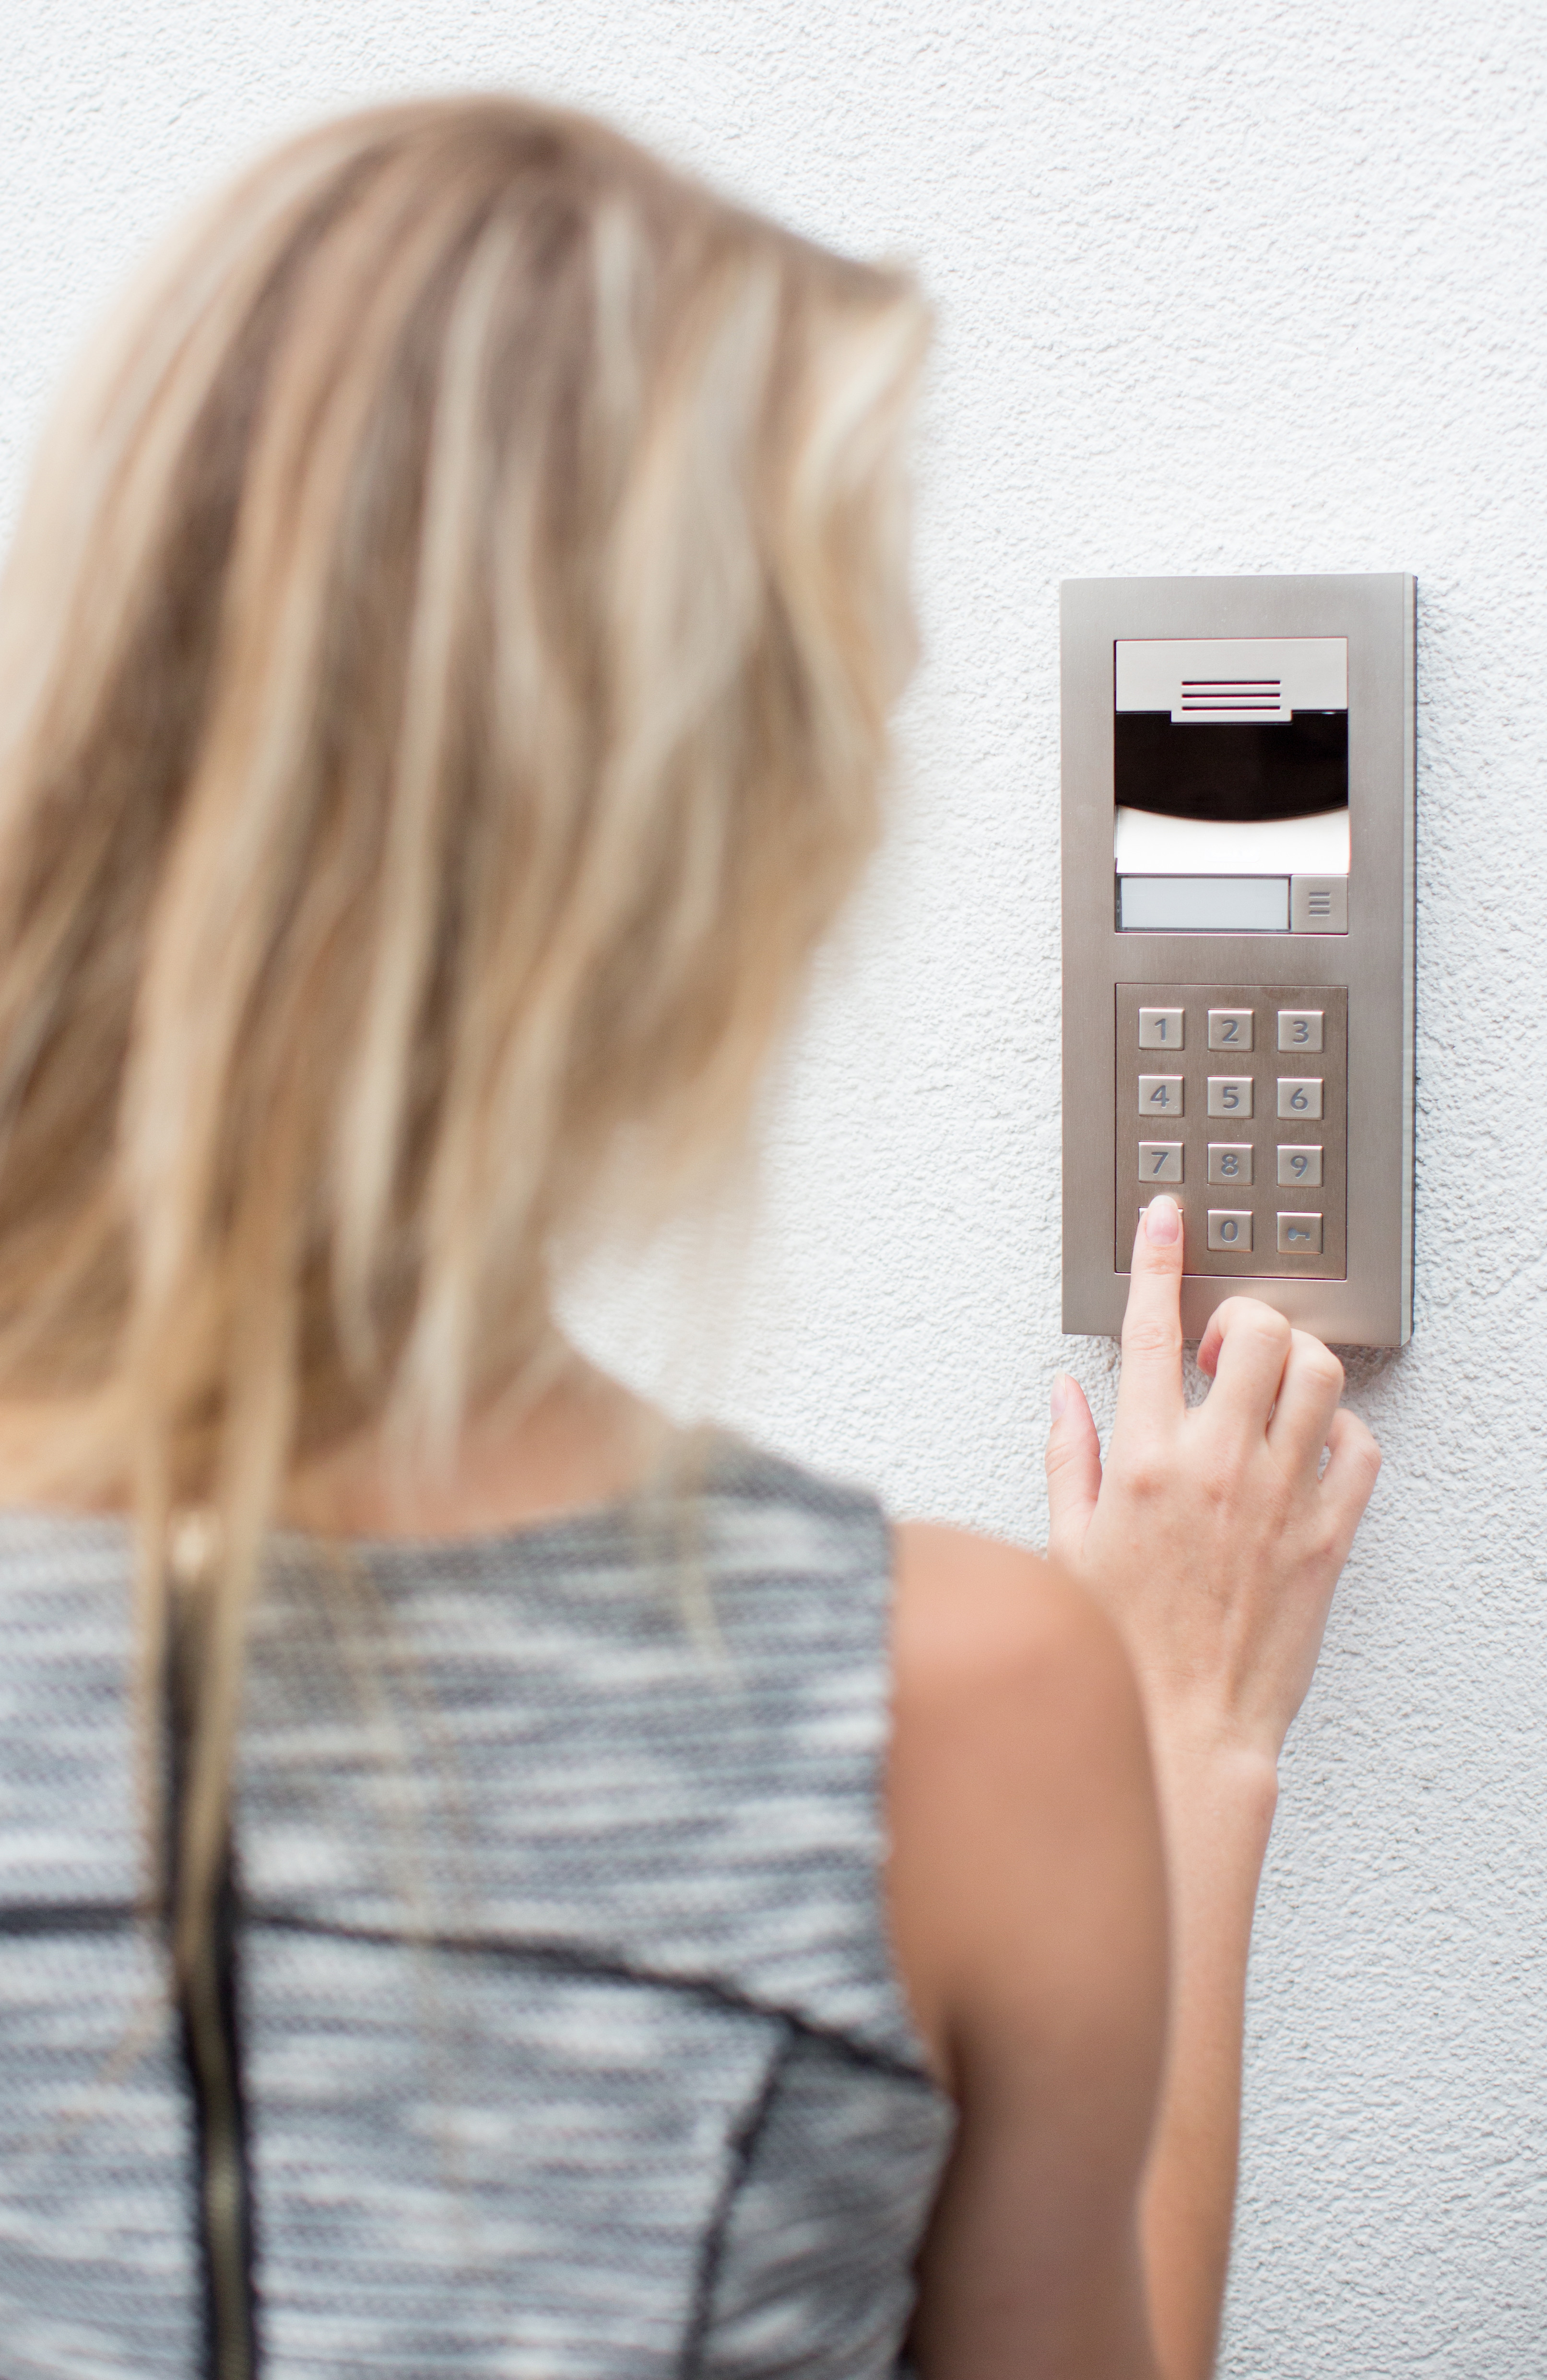 Woman using a button access control panel on a white wall